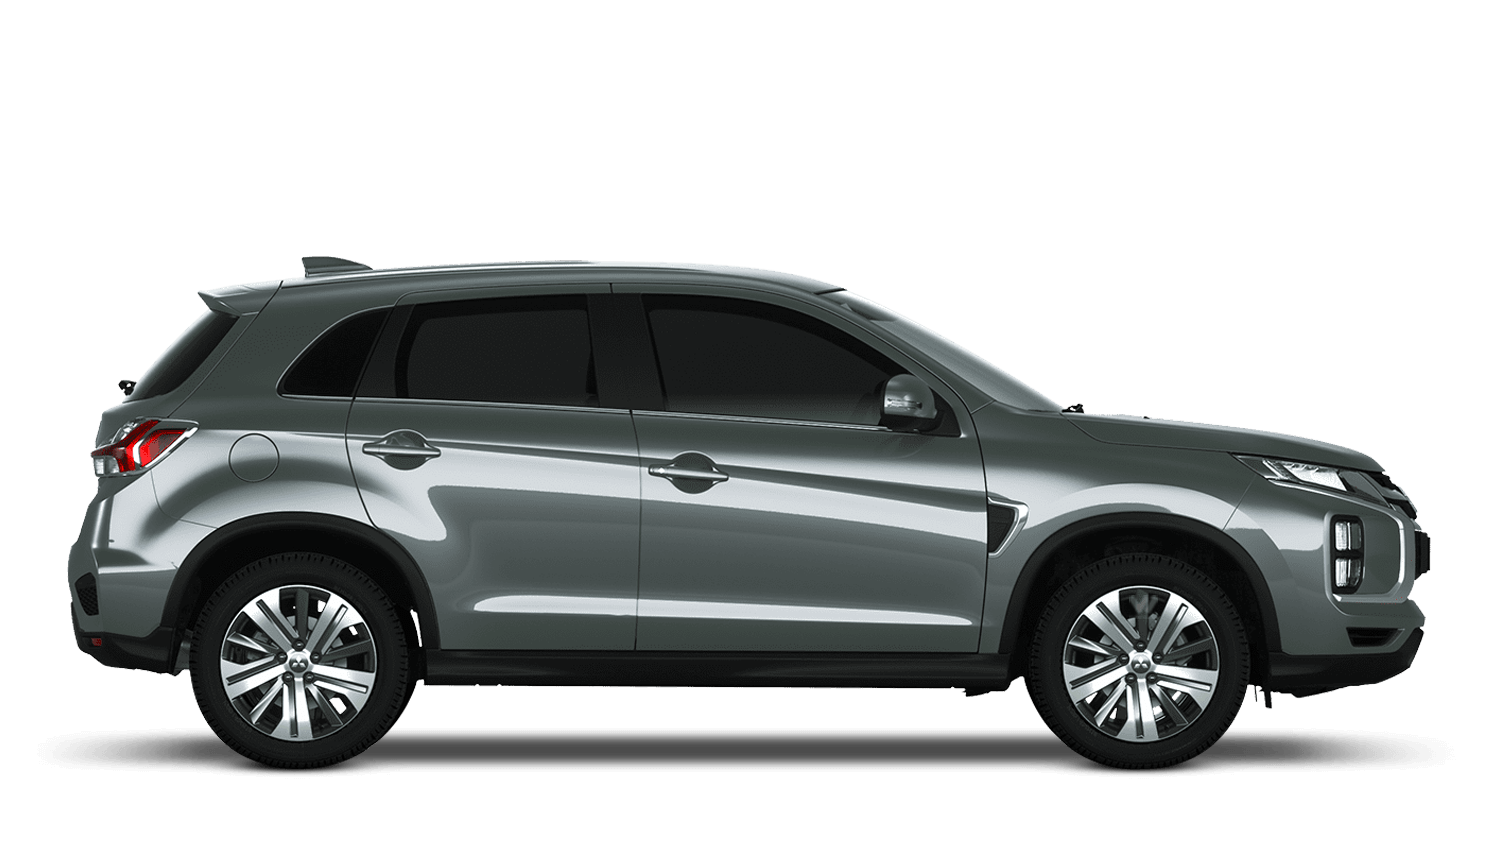 Atlantic Grey Mitsubishi Asx New